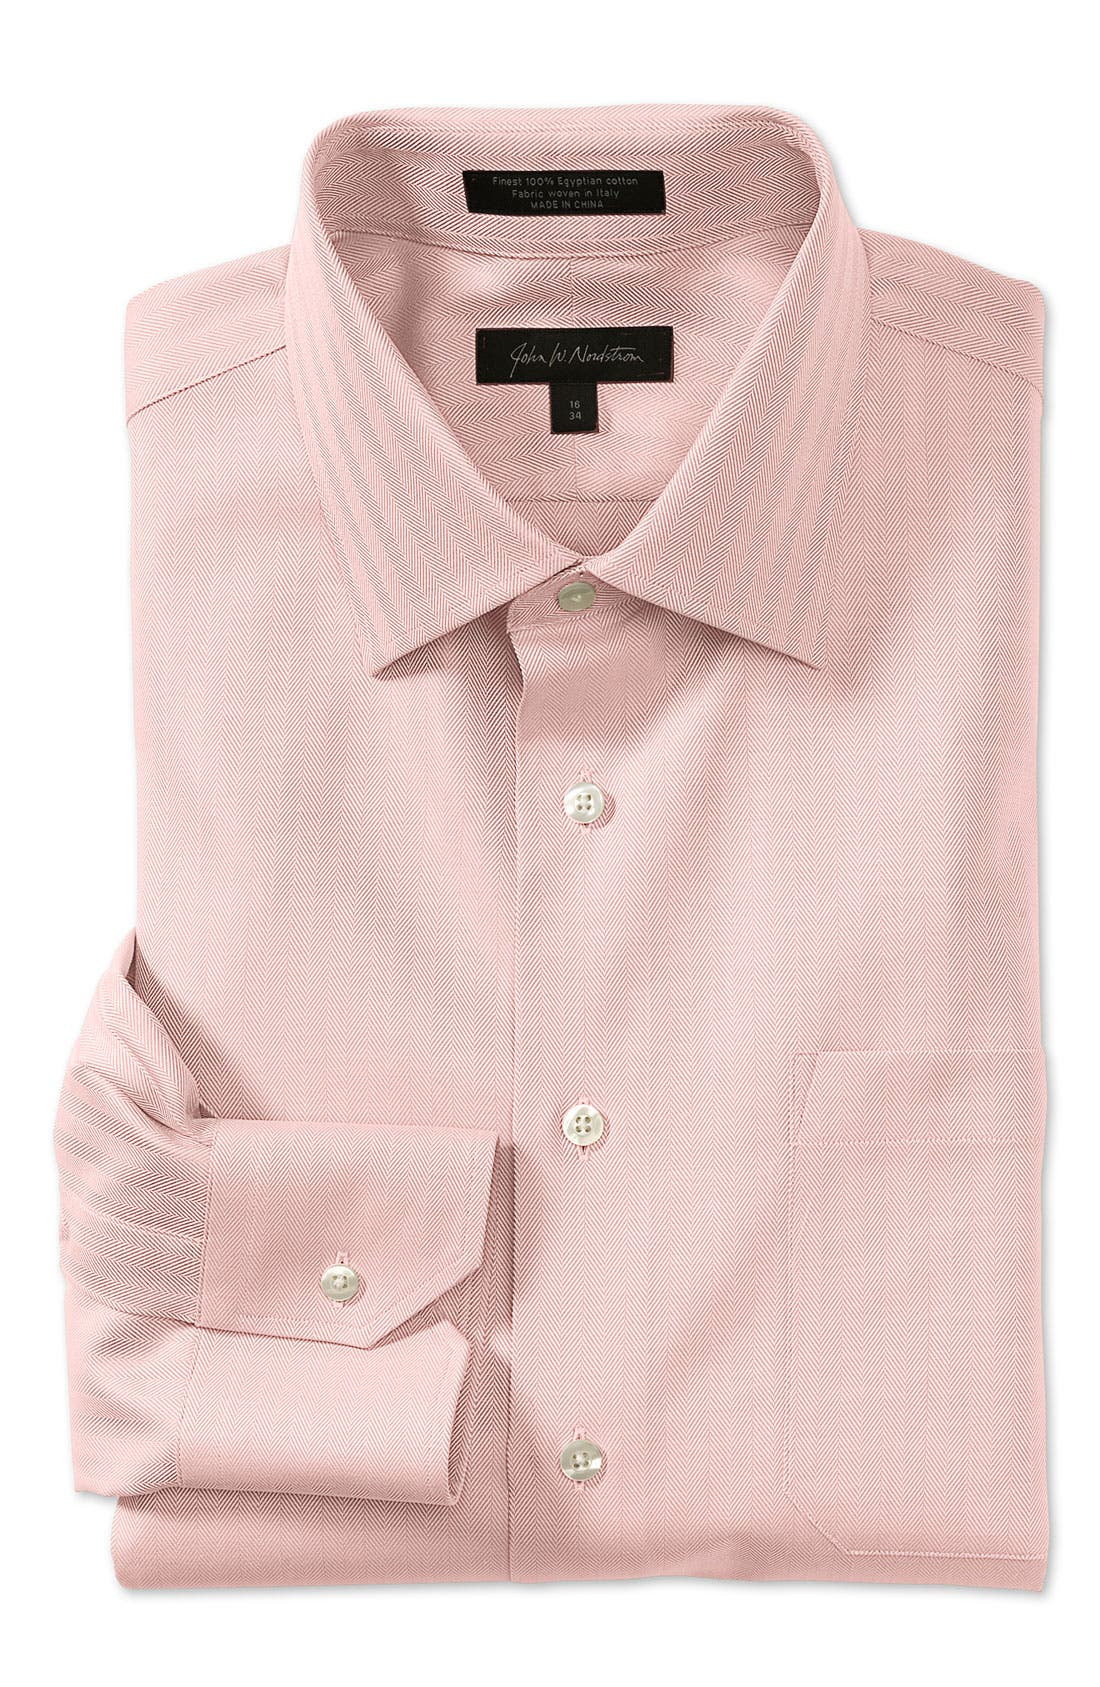 Alternate Image 1 Selected - John W. Nordstrom® Men's Solid Herringbone Cotton Traditional Fit Dress Shirt